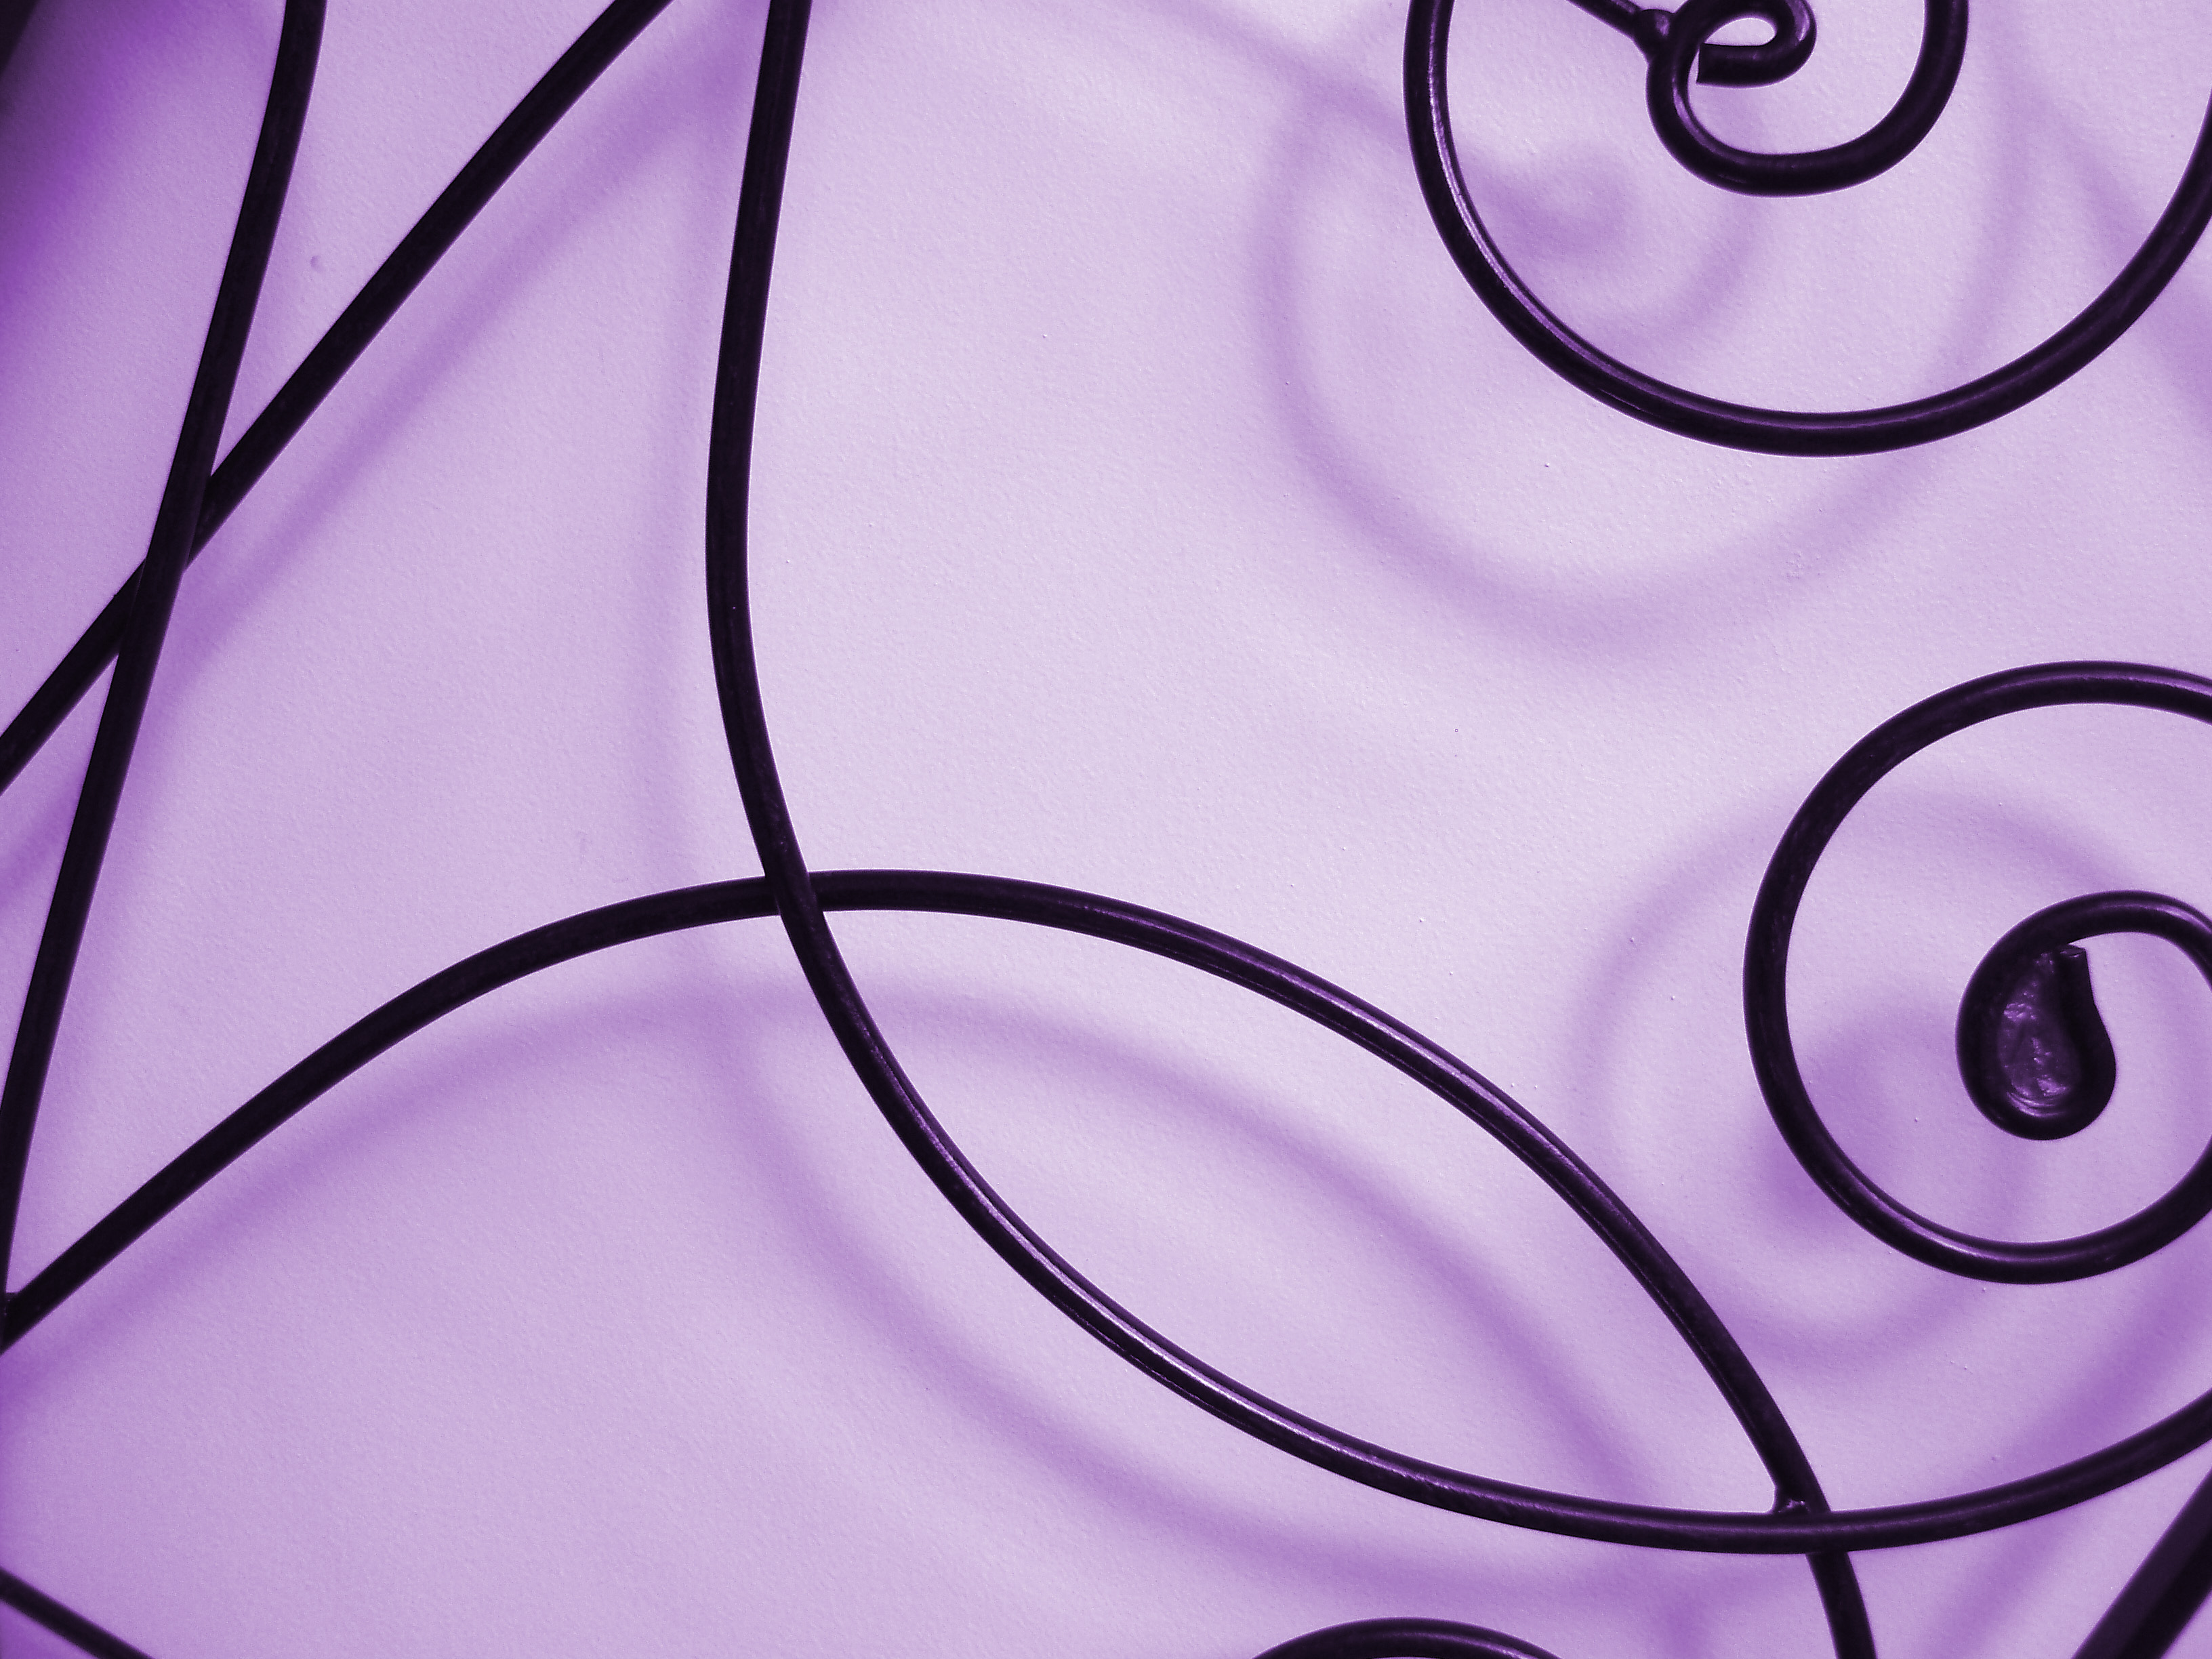 purple background with orante metal crisscrossing lines